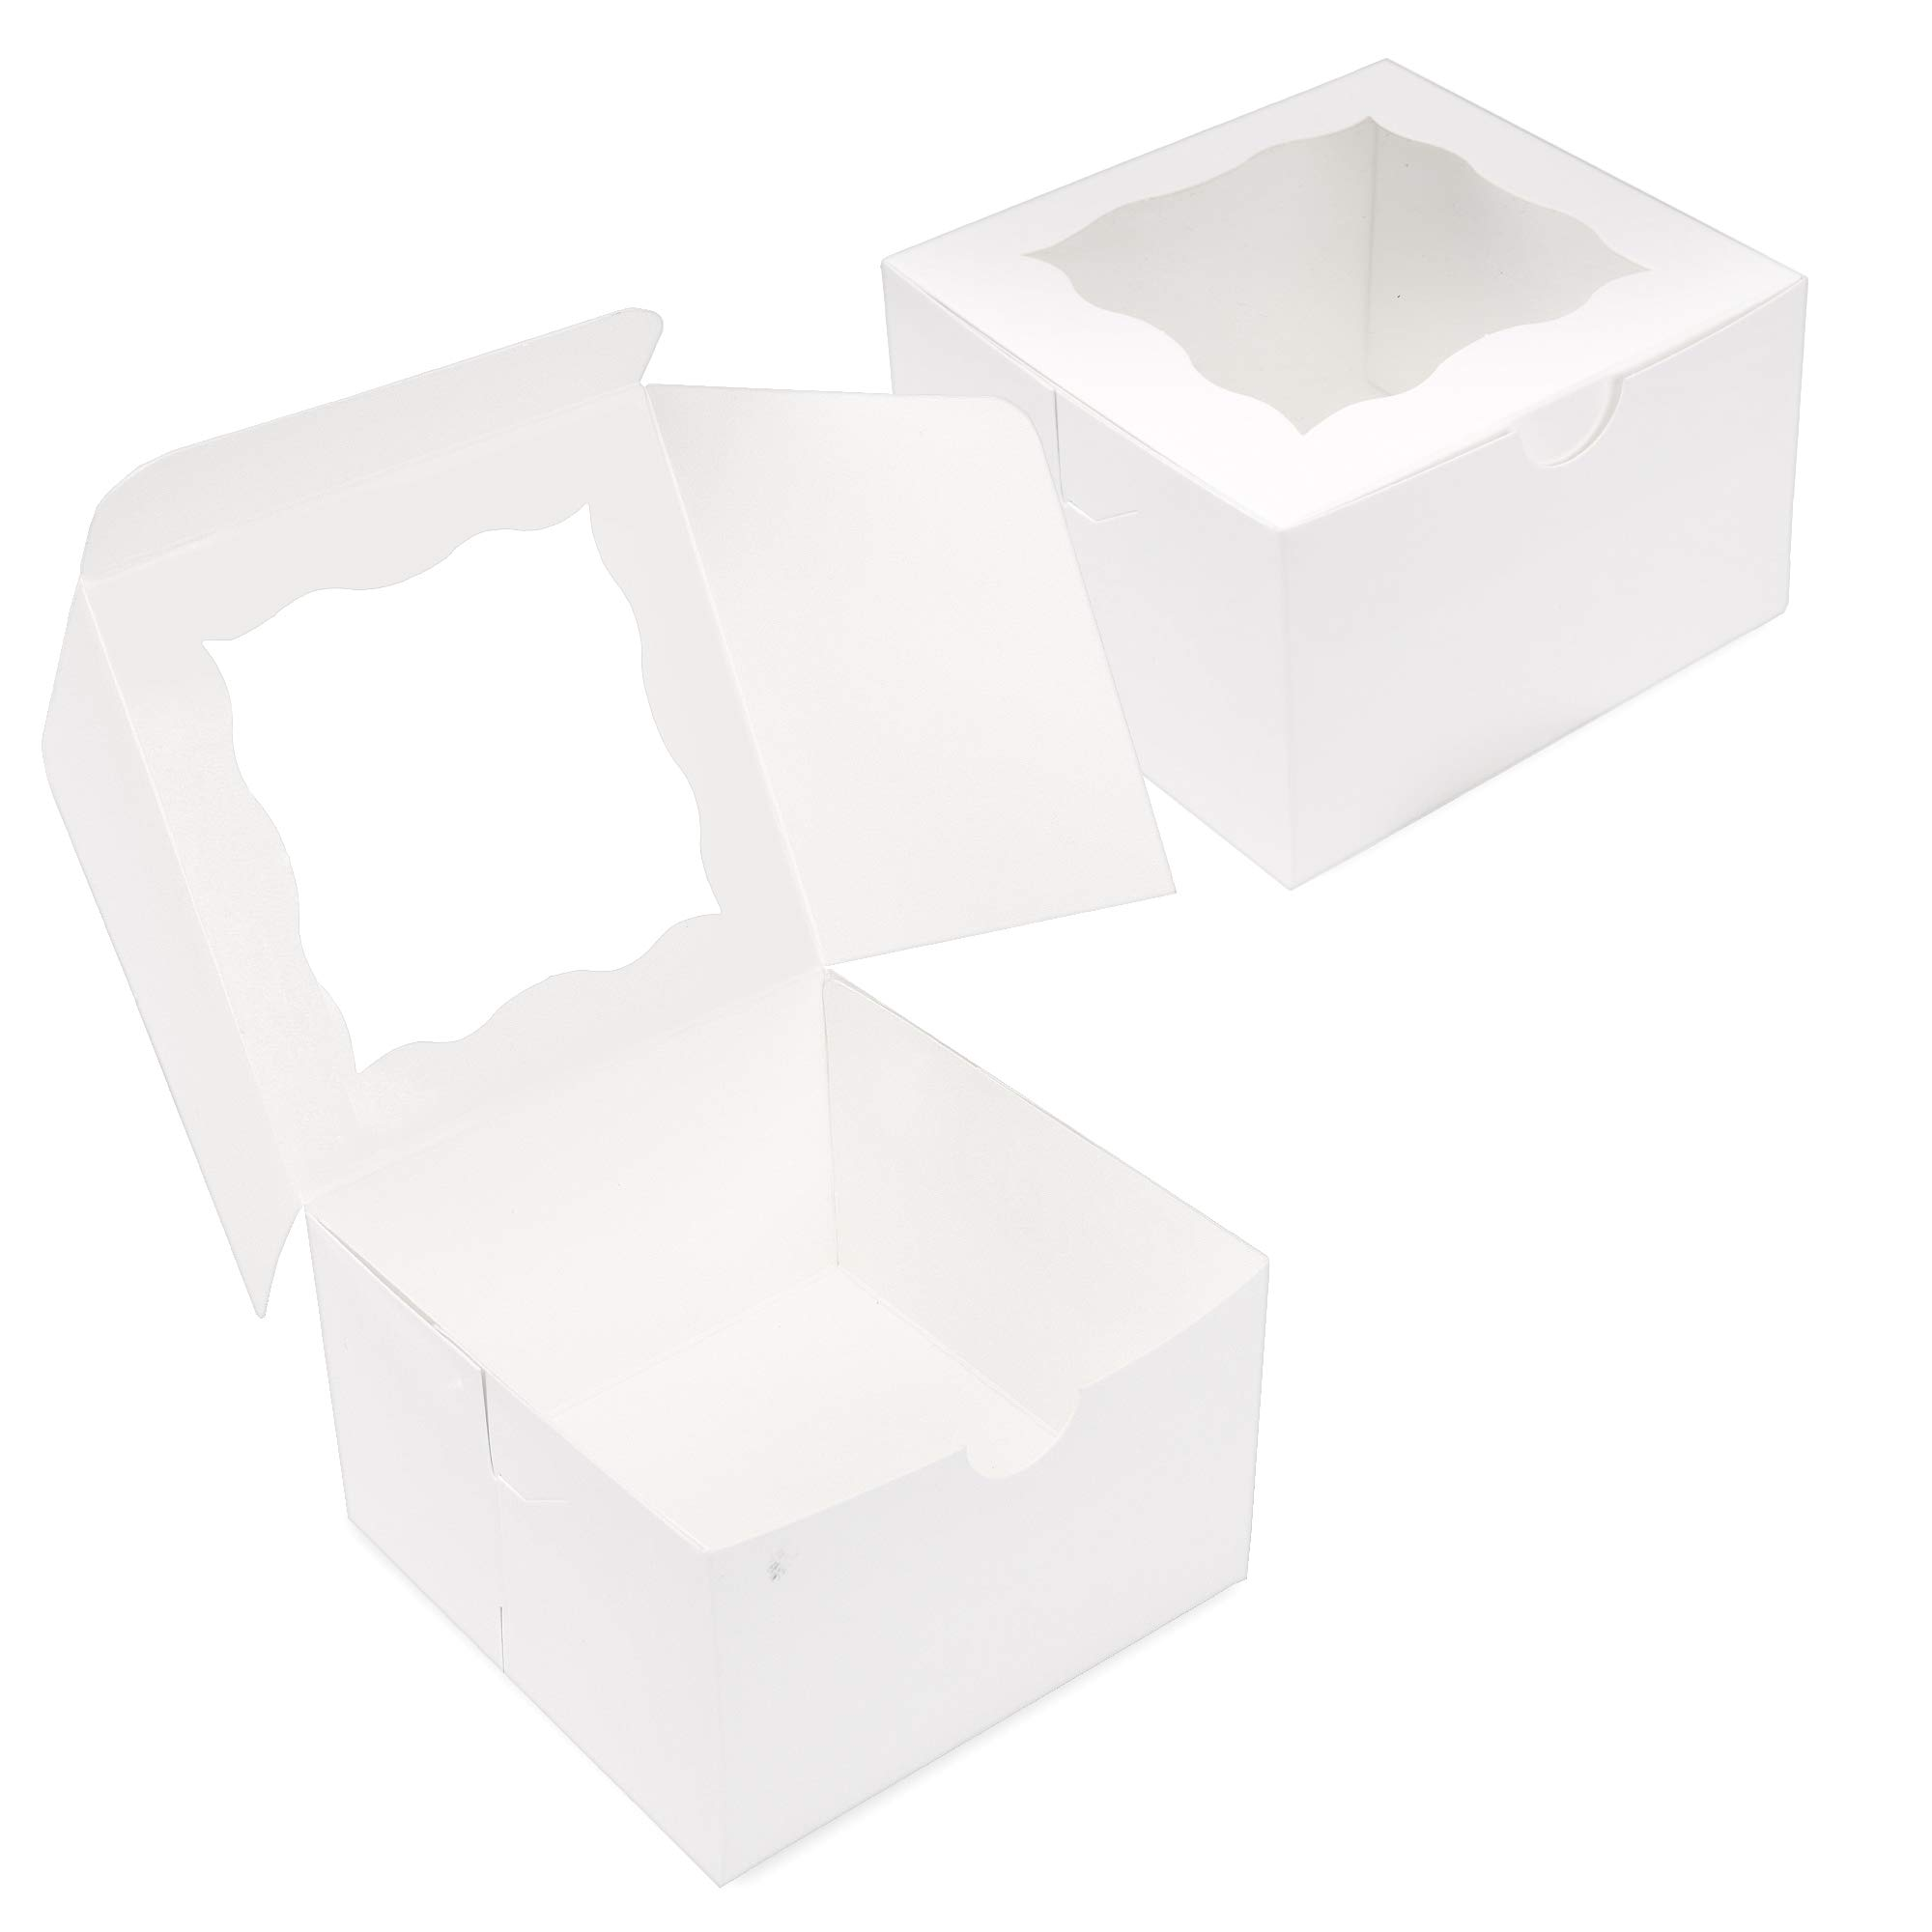 {Pack of 50} White Bakery Boxes with Window 4x4x2.5'' Cute Cardboard Gift Packaging Containers for Cookies, Cupcakes, Small Desserts, Pastry, Wedding Cake, Baby Showers, Donuts, Treats, Party Favors! by Surf City Supplies (Image #4)